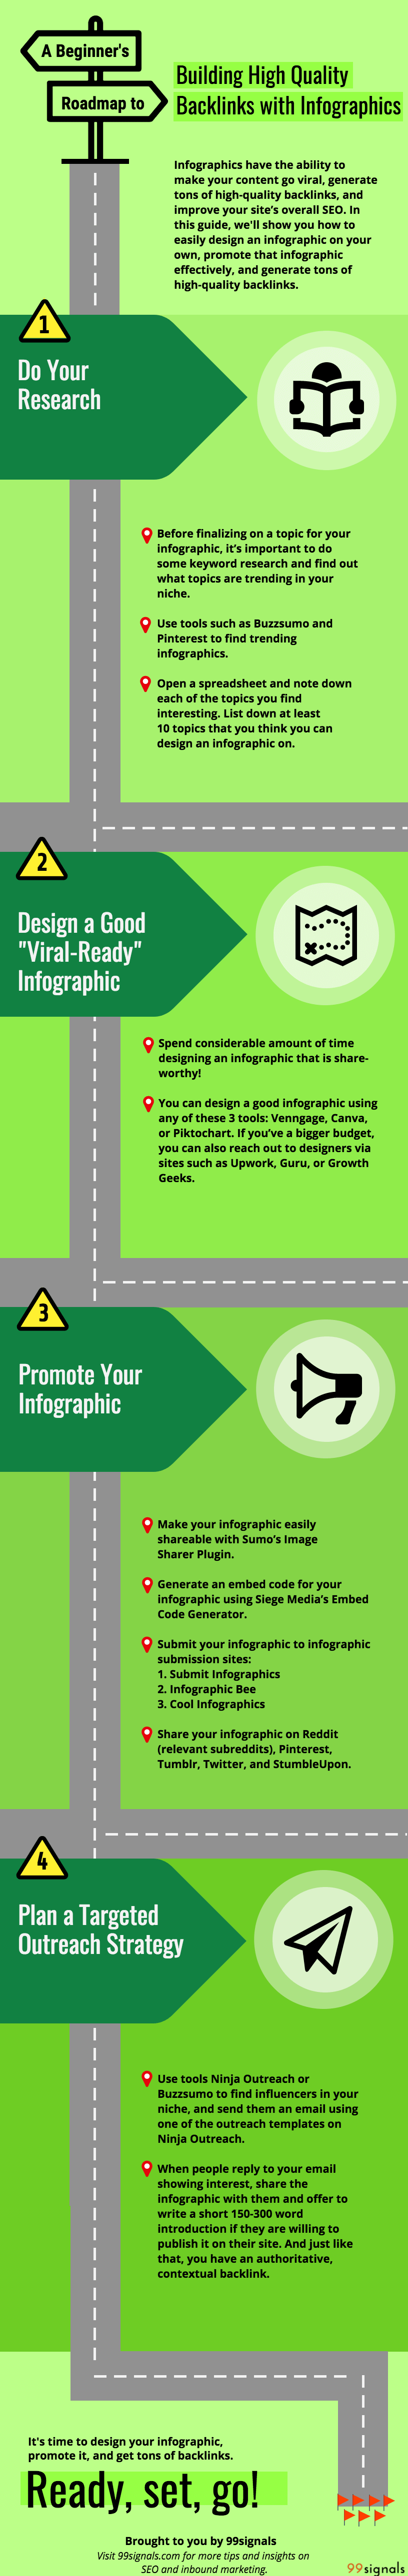 Infographic: A Beginner's Roadmap to Building High Quality Backlinks with Infographics